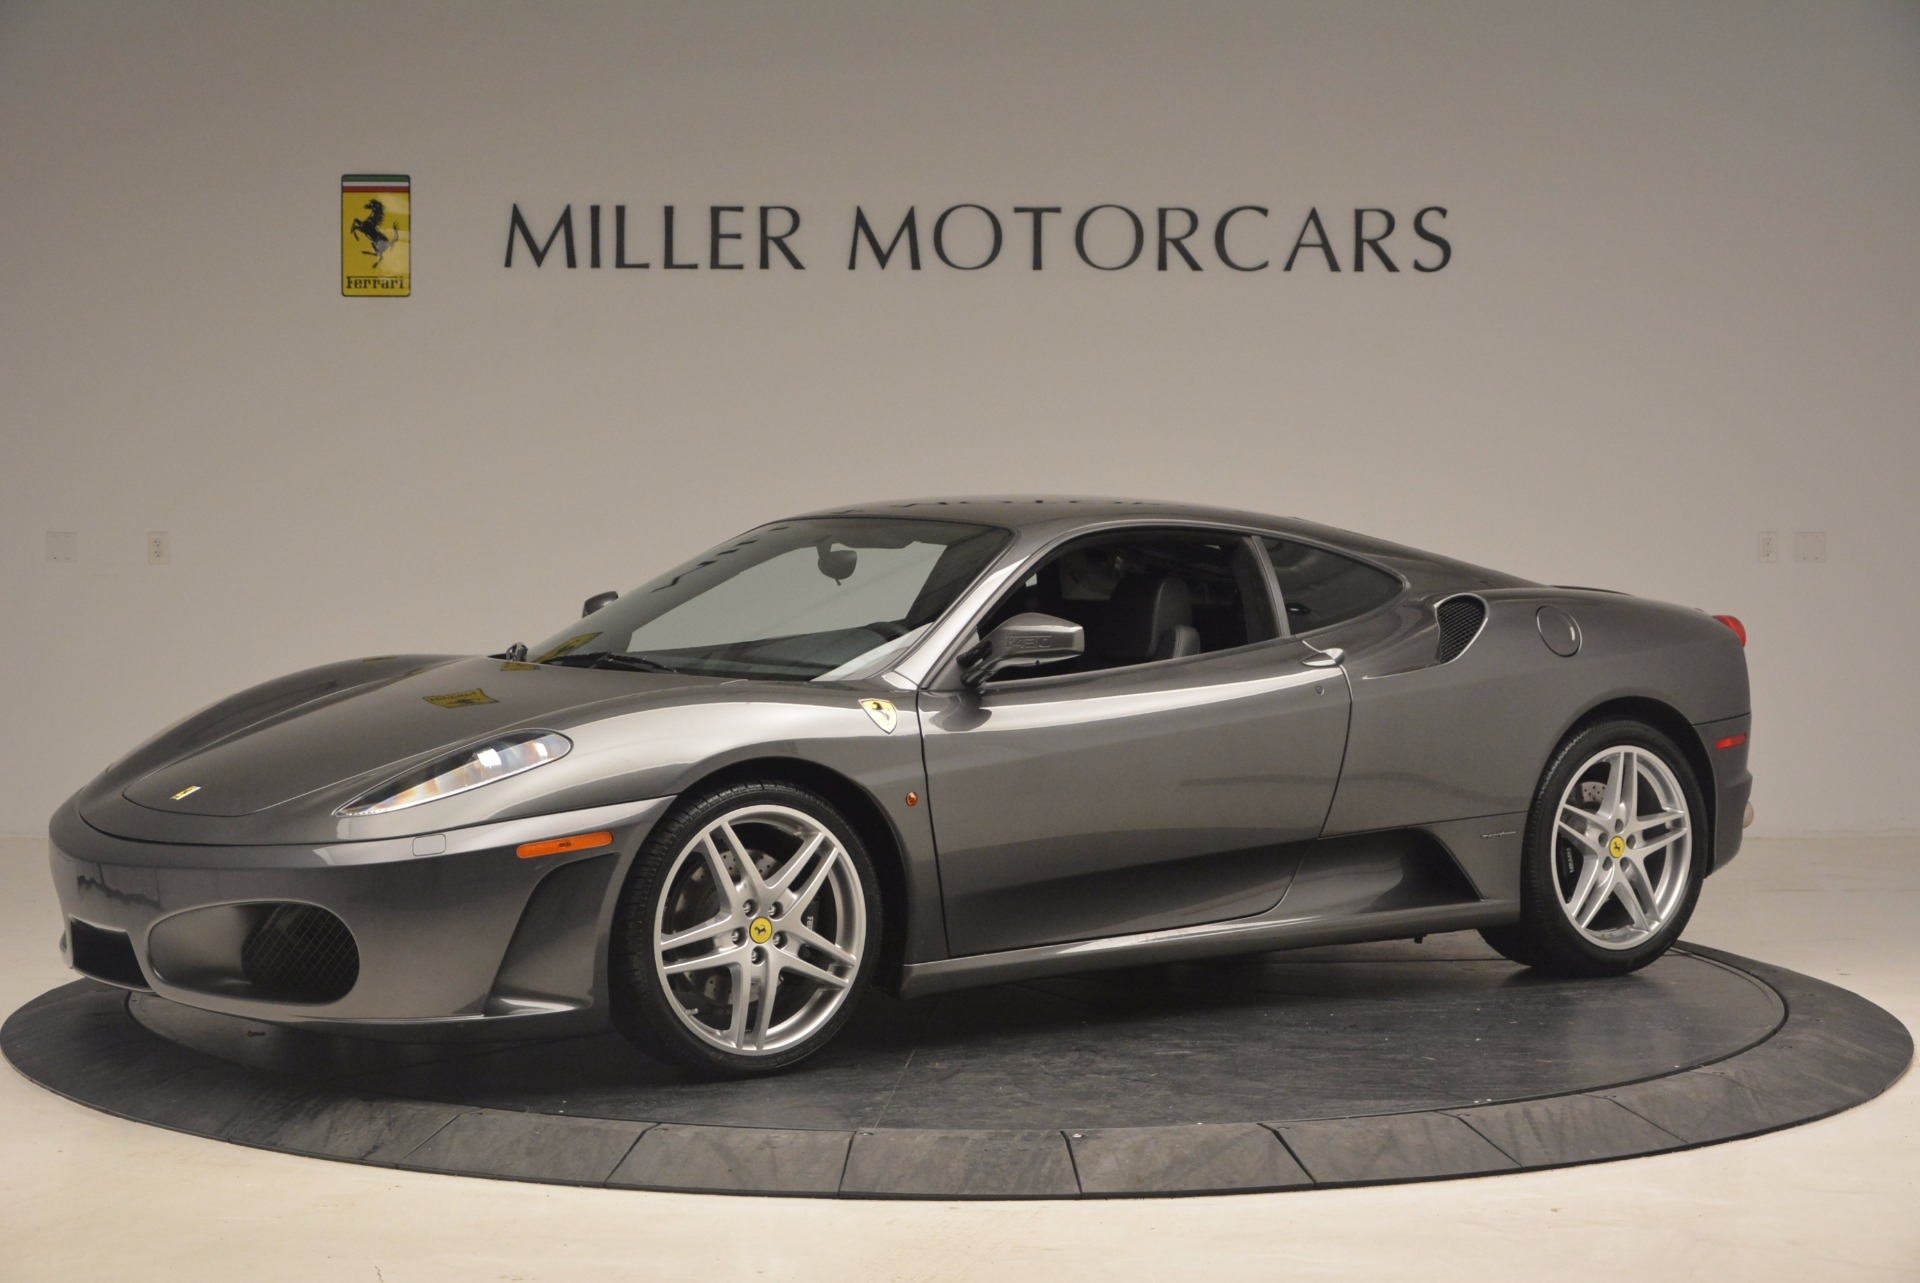 Used 2005 Ferrari F430 6-Speed Manual For Sale In Greenwich, CT 1286_p2